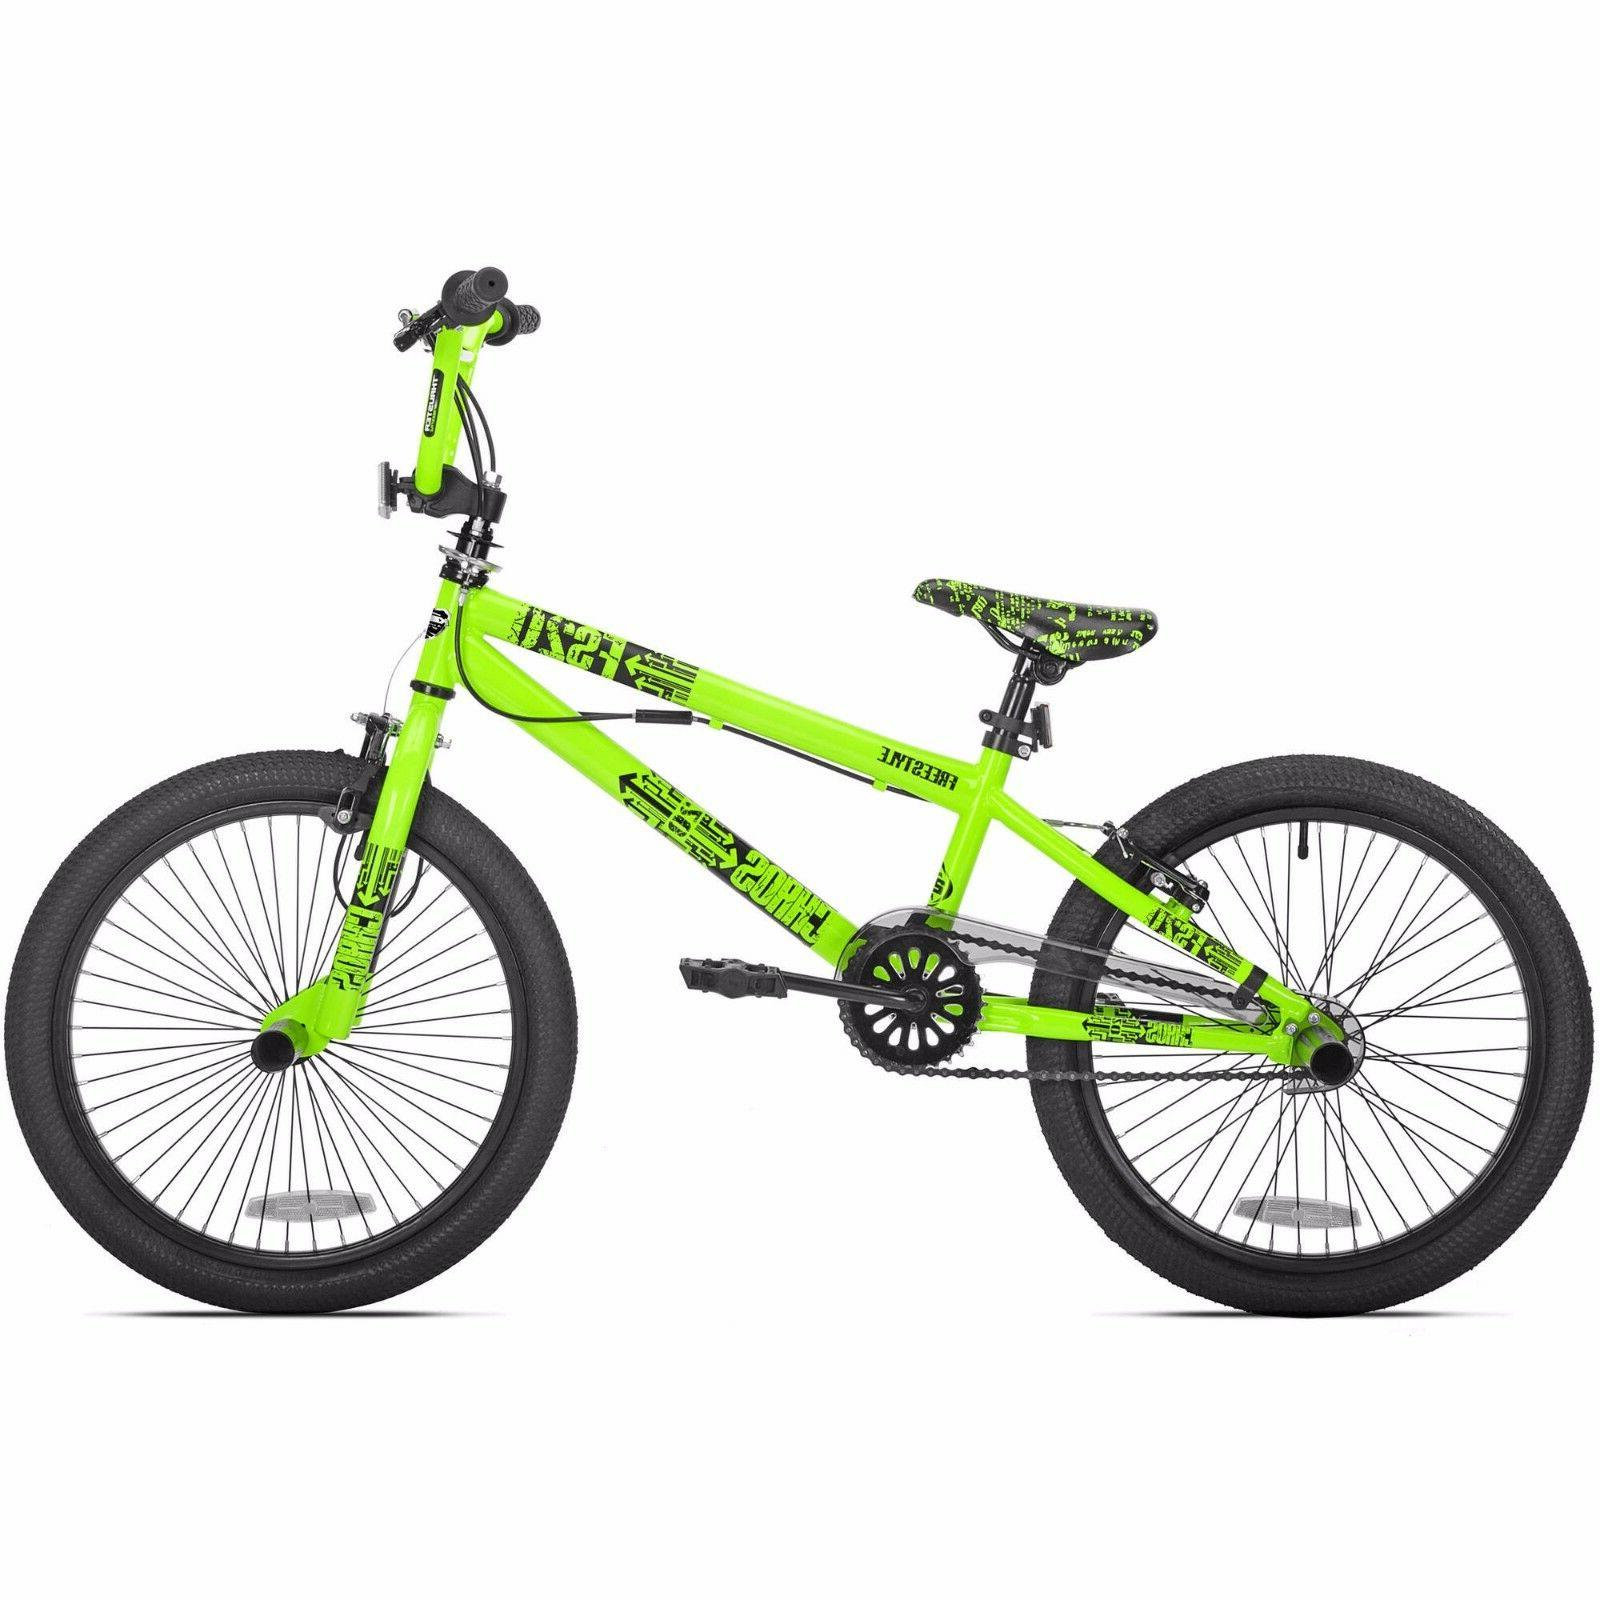 Bmx Bikes For Boys Bicycle 20 Inch Mountain Road Road 1 Spee